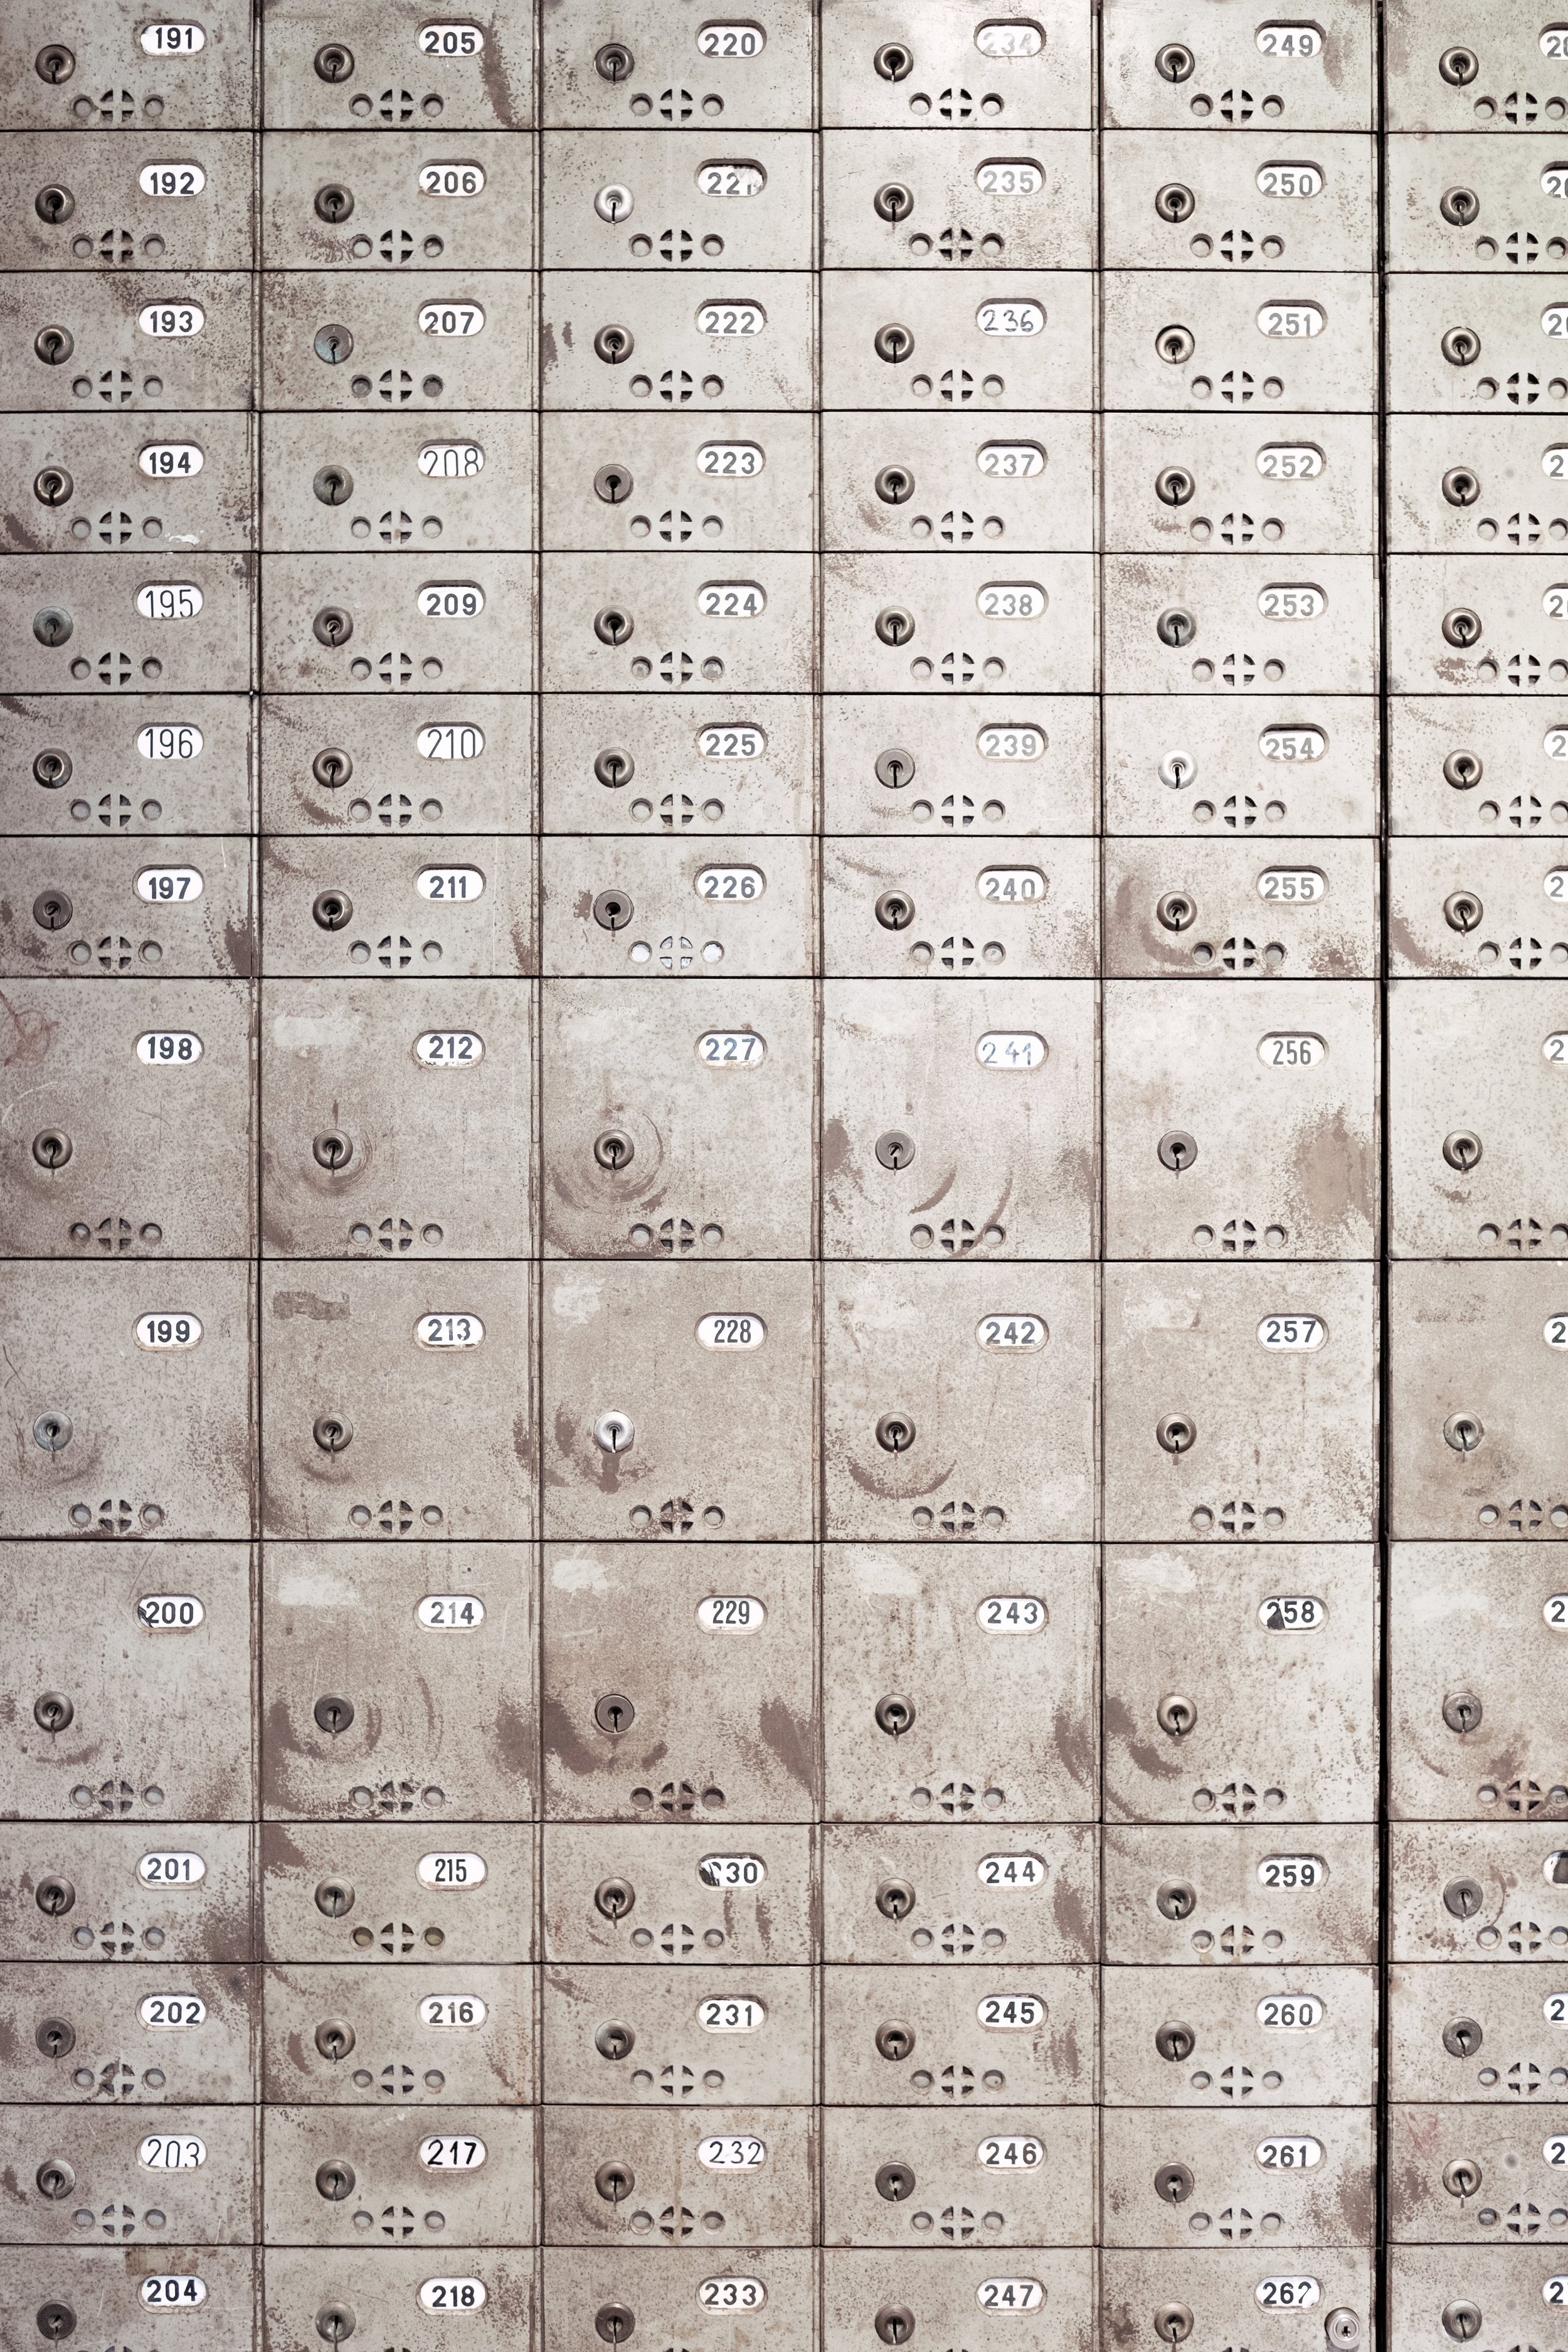 Where and how will you be storing your clients details?